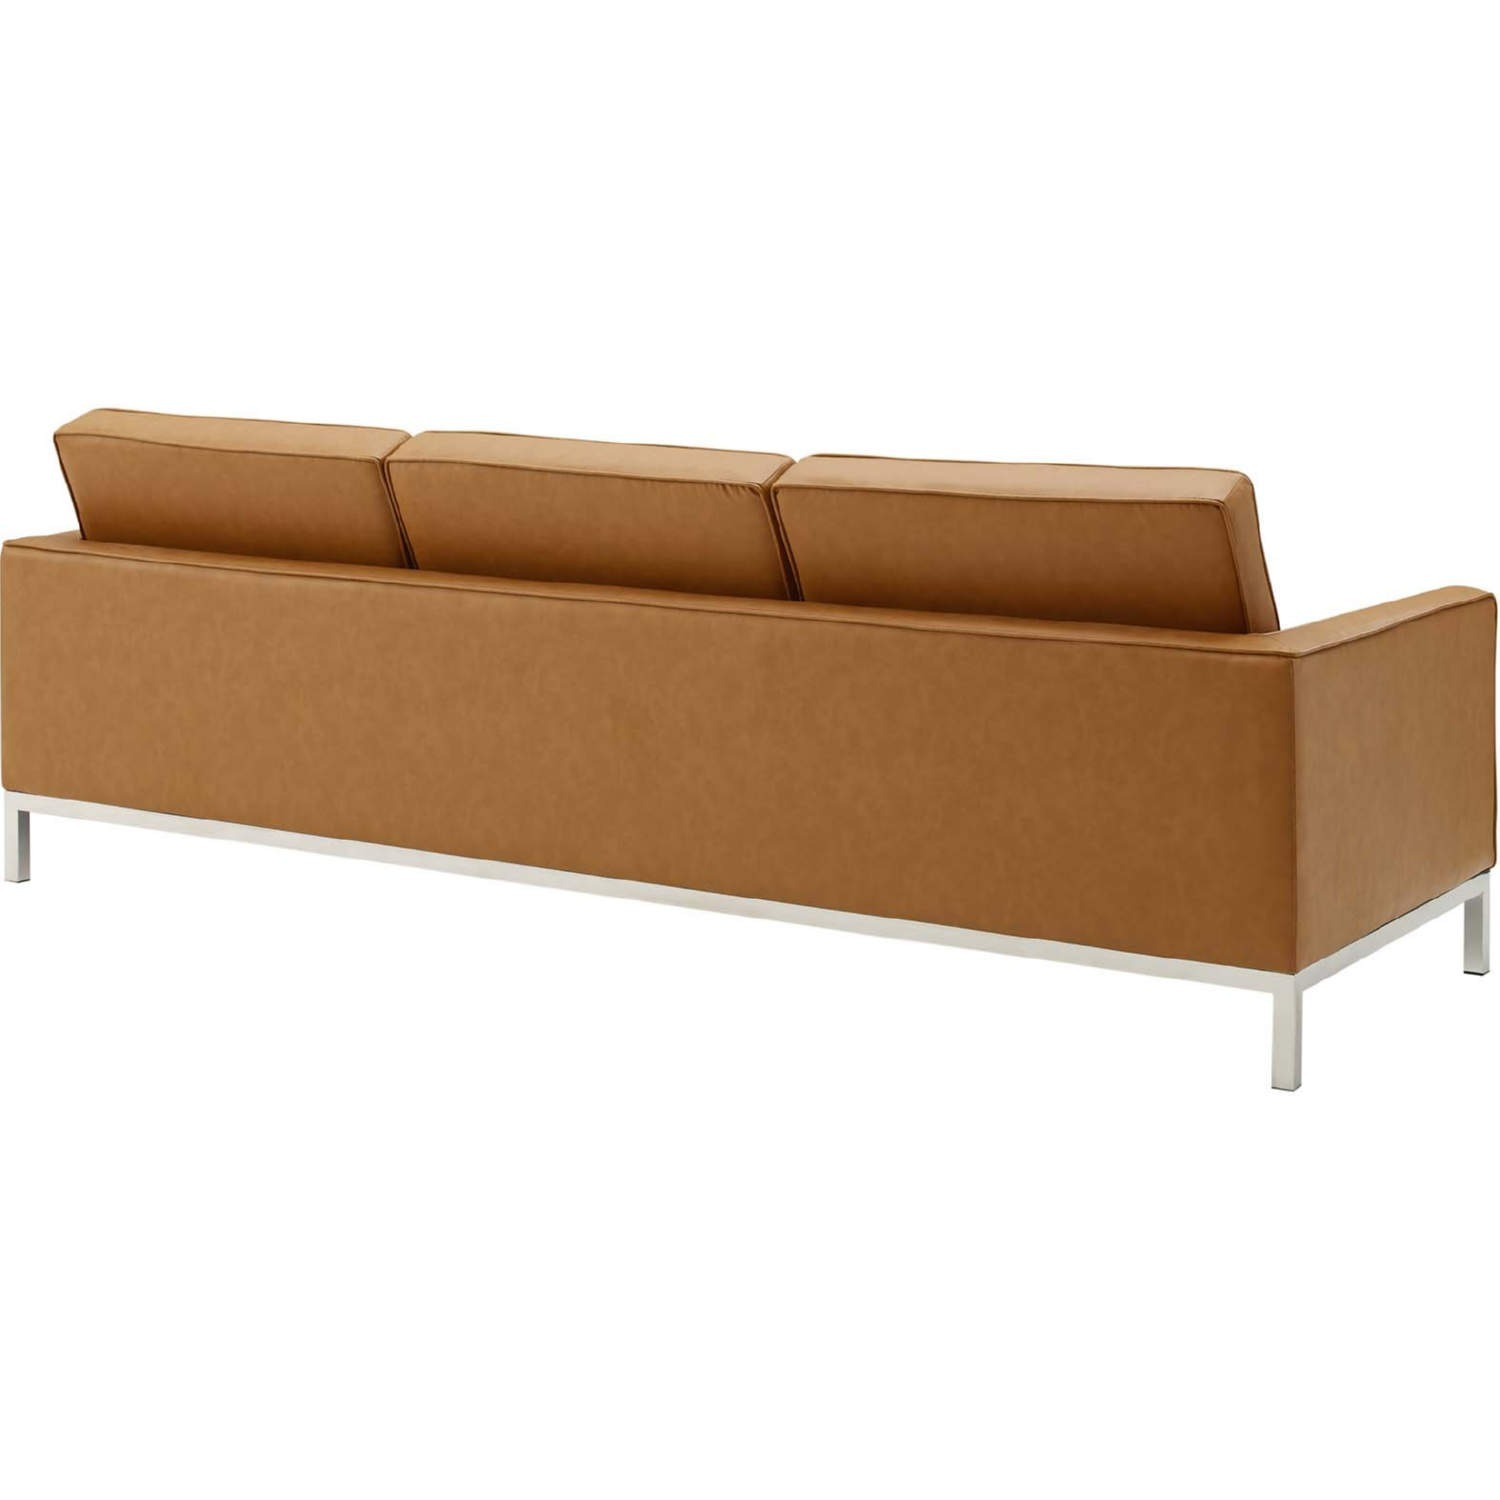 Modern Sofa In Tan Faux Leather Upholstery - image-2